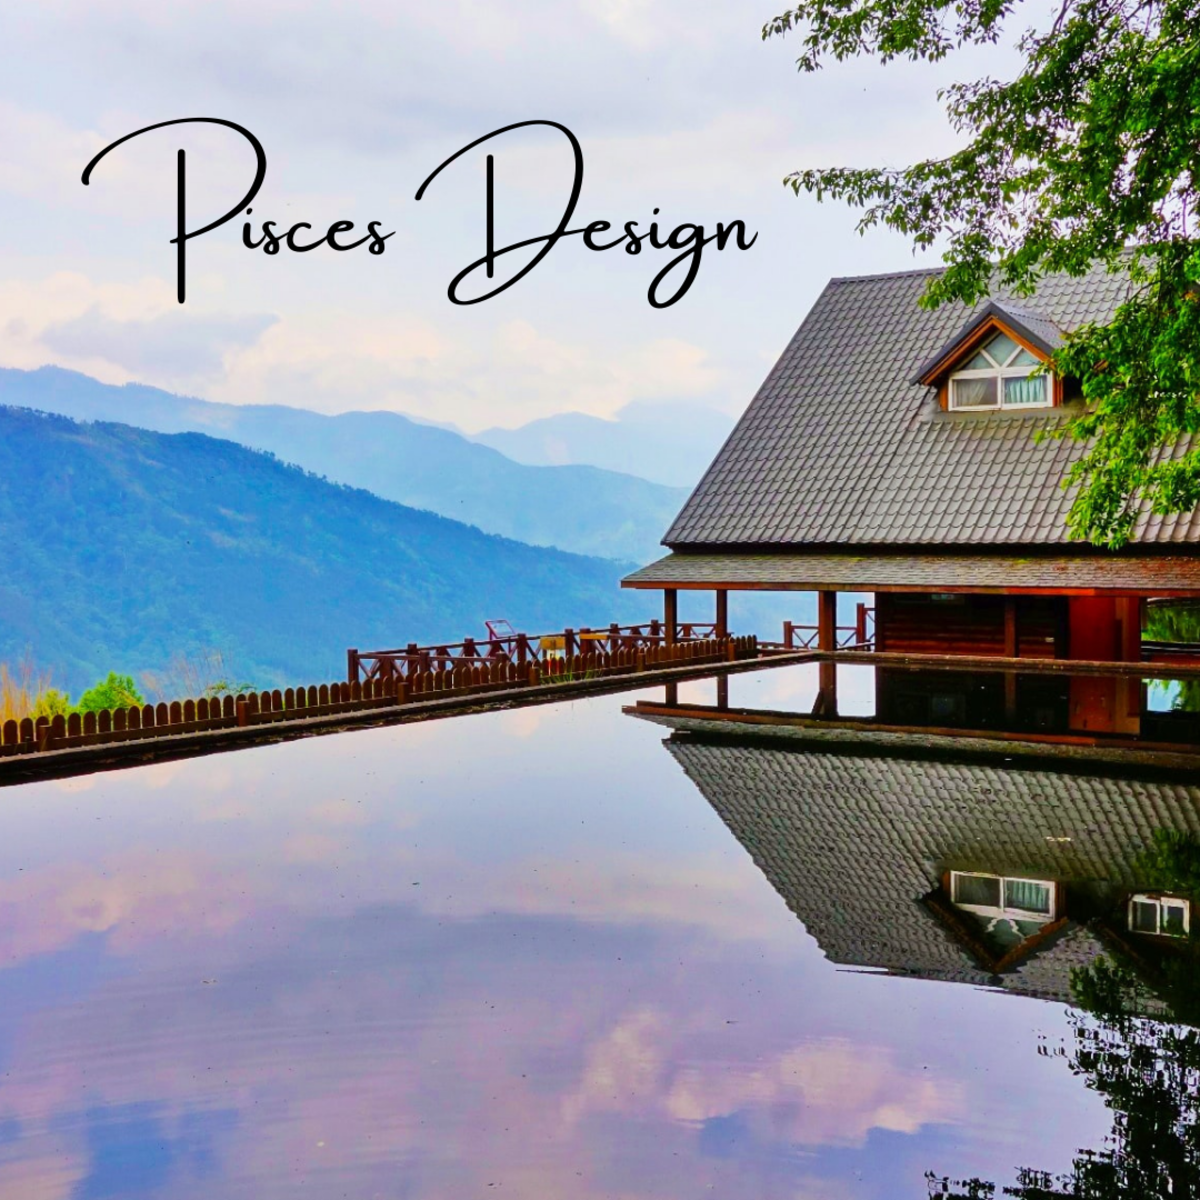 A Pisces home is a world of distinct possibilities, repetition, reflection, beauty, grace, elegance, and peace.